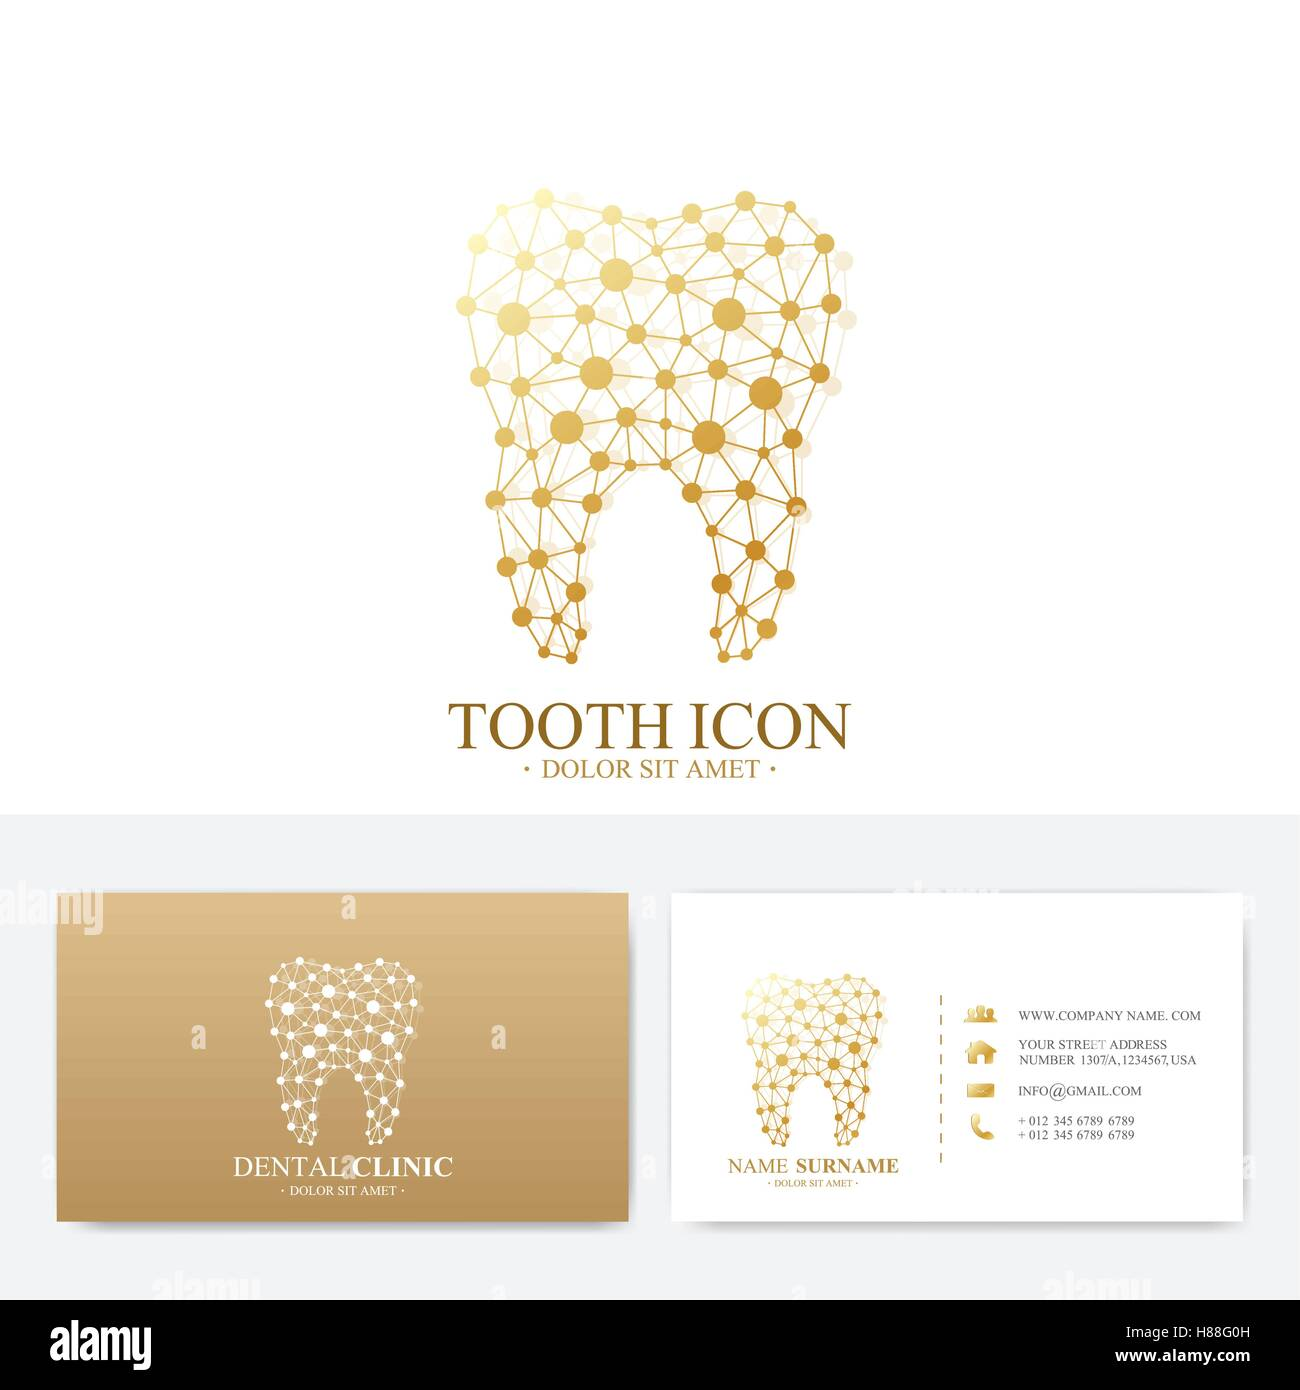 Premium business card print template visiting dental clinic card premium business card print template visiting dental clinic card with tooth logo dentist office oral care dental implants me flashek Image collections